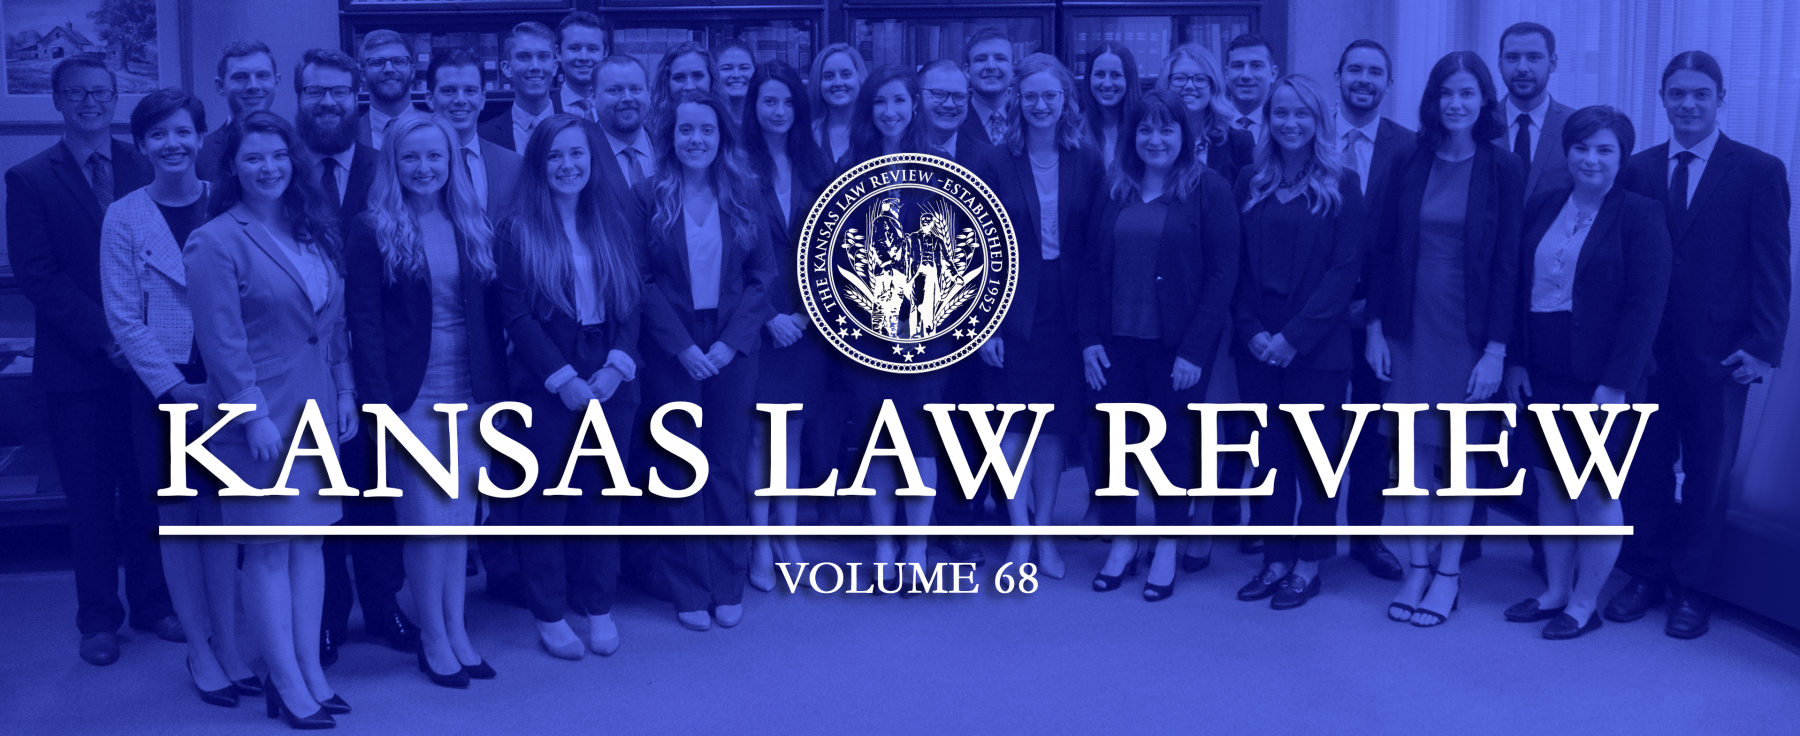 Kansas Law Review